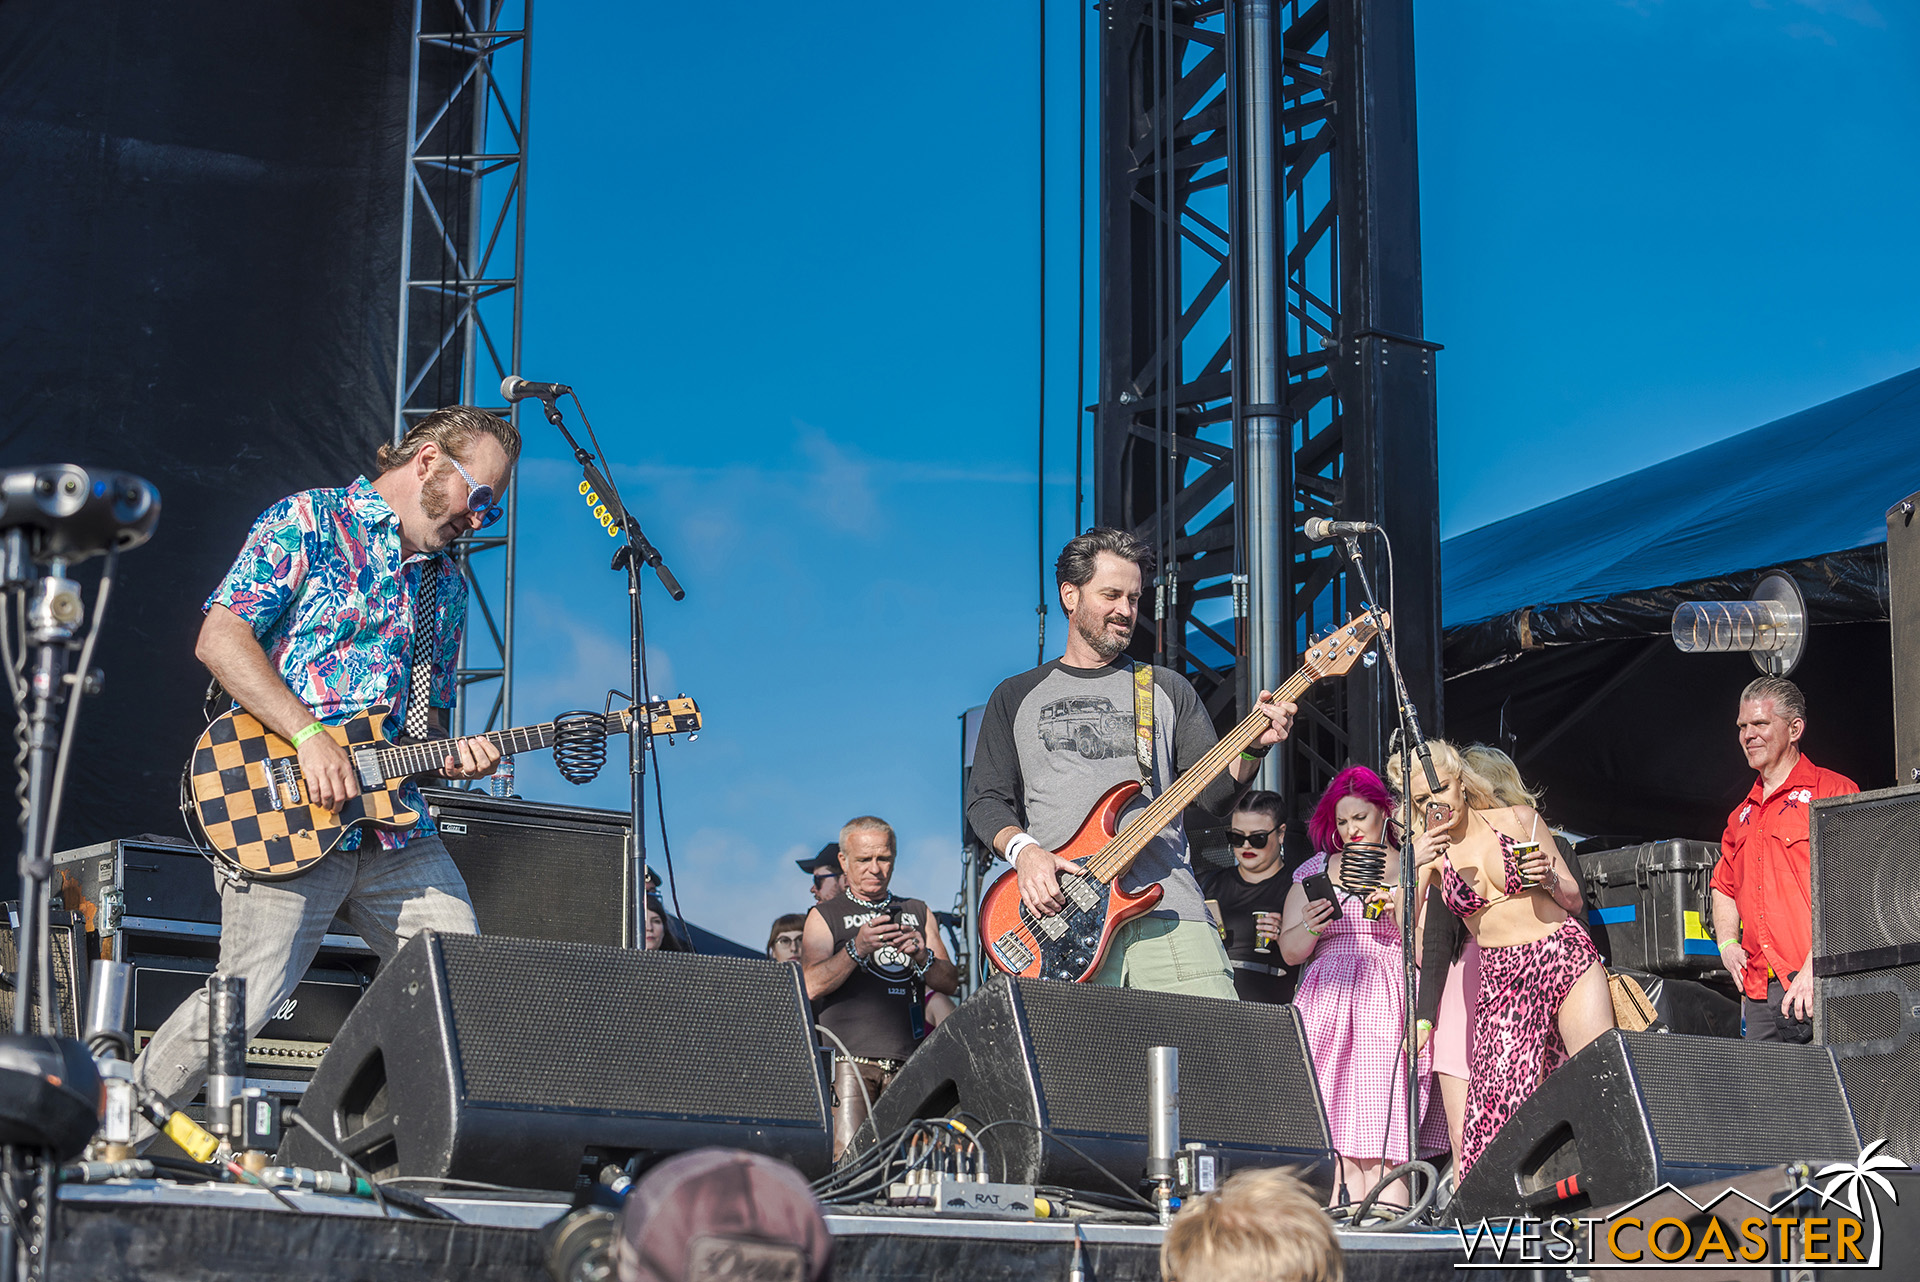 Reel Big Fish rocks the stage at Back to the Beach.